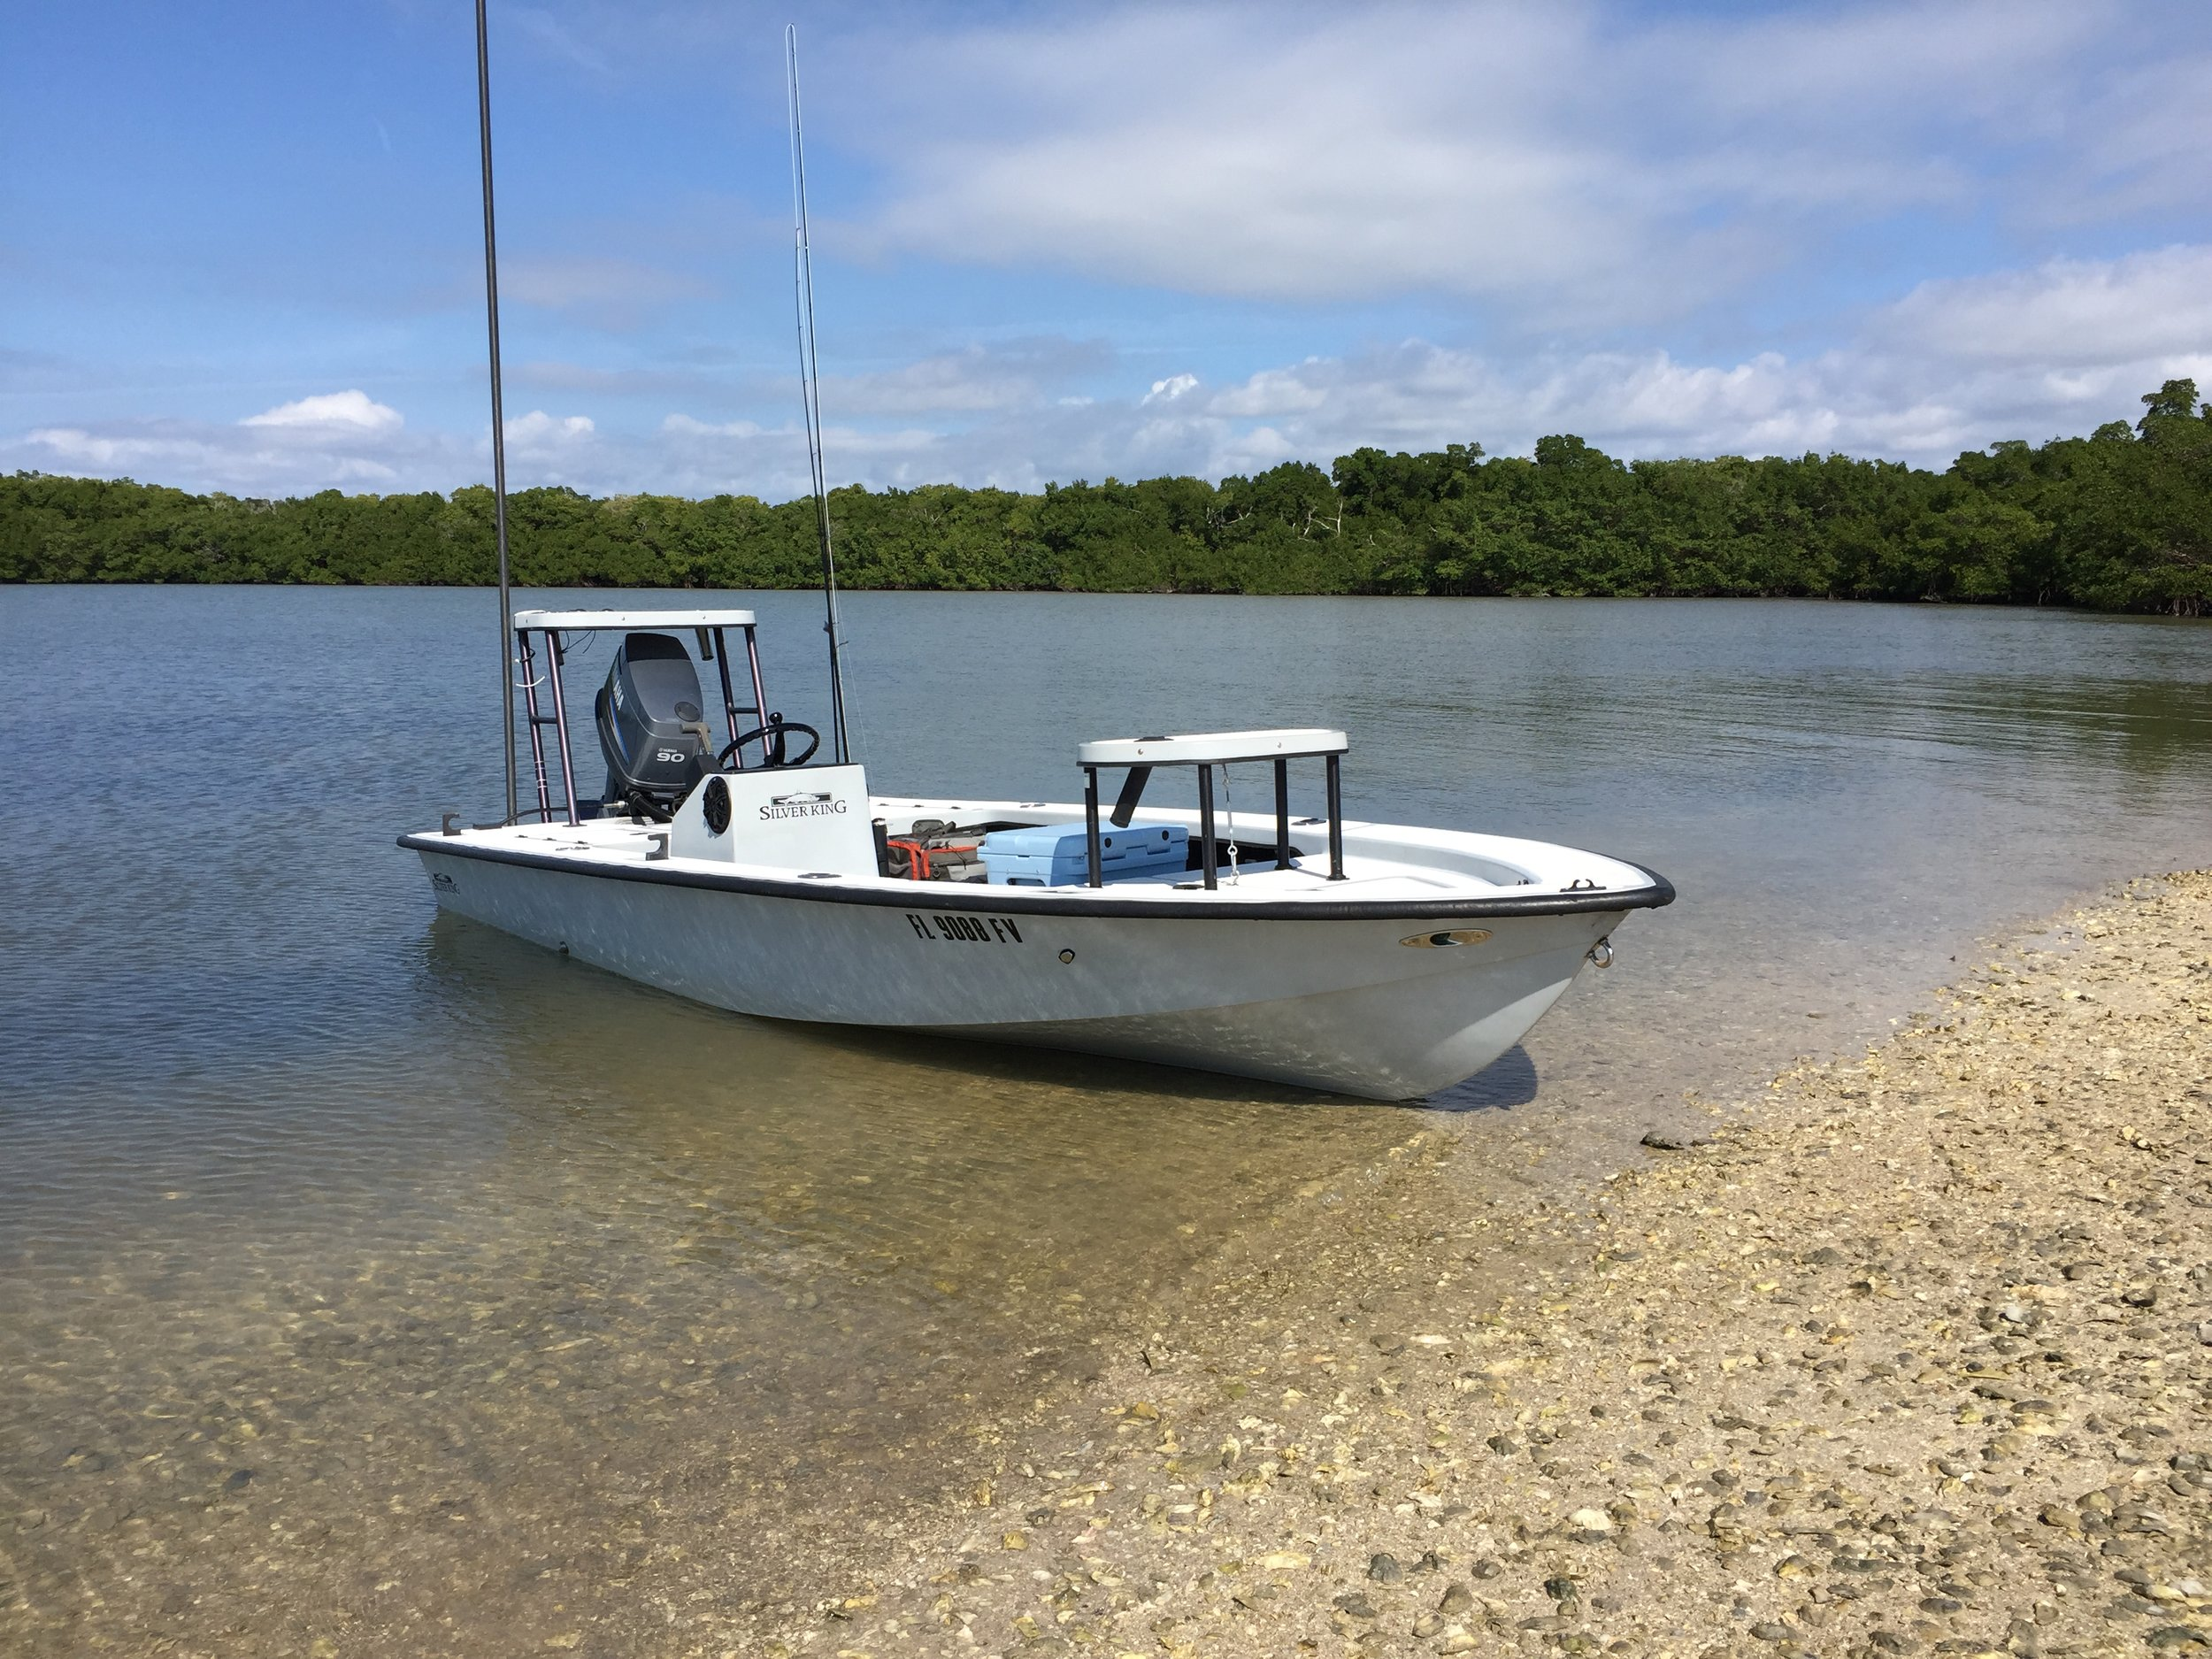 The Skiff - The Silver King 16 Signature Series is a timeless flats boat that has the range and versatility few skiff builds have today. It is very important to have a boat that can draft shallow enough to fish the countless creeks, rivers and connecting waterways that make up the